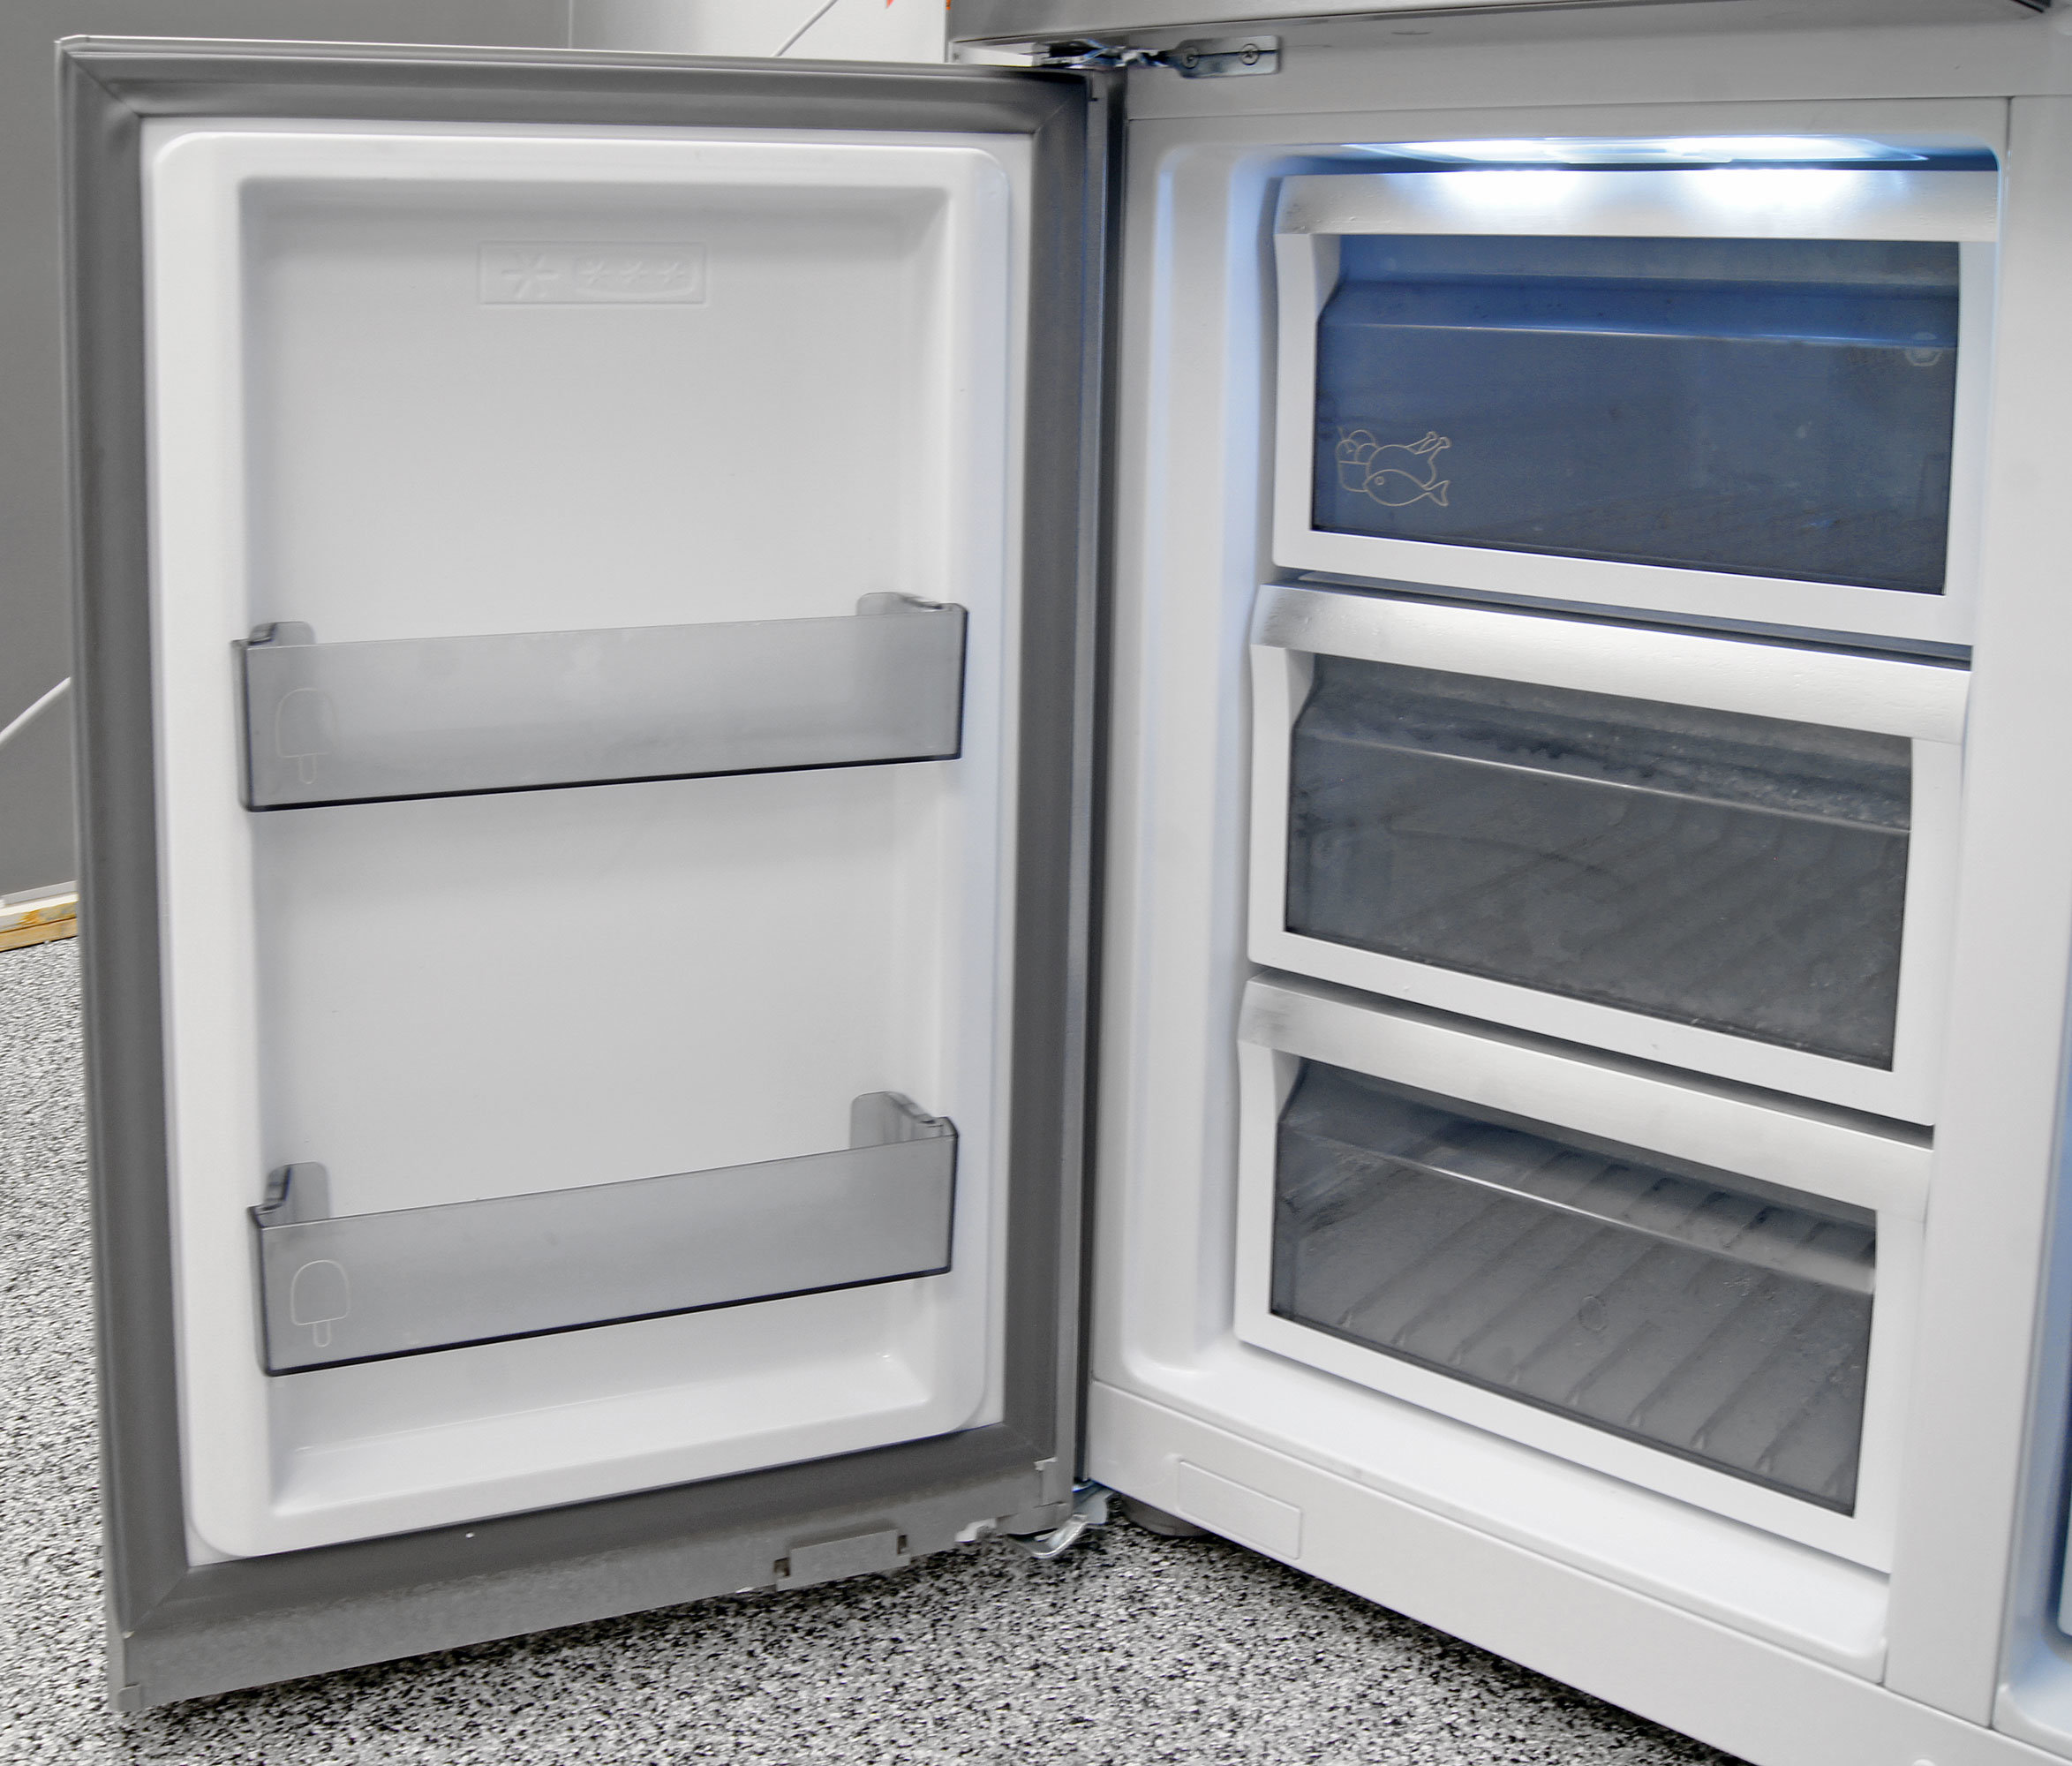 The Dacor DTF364SIWS's left freezer section is made up entirely of drawers, with two shallow shelves on the door.